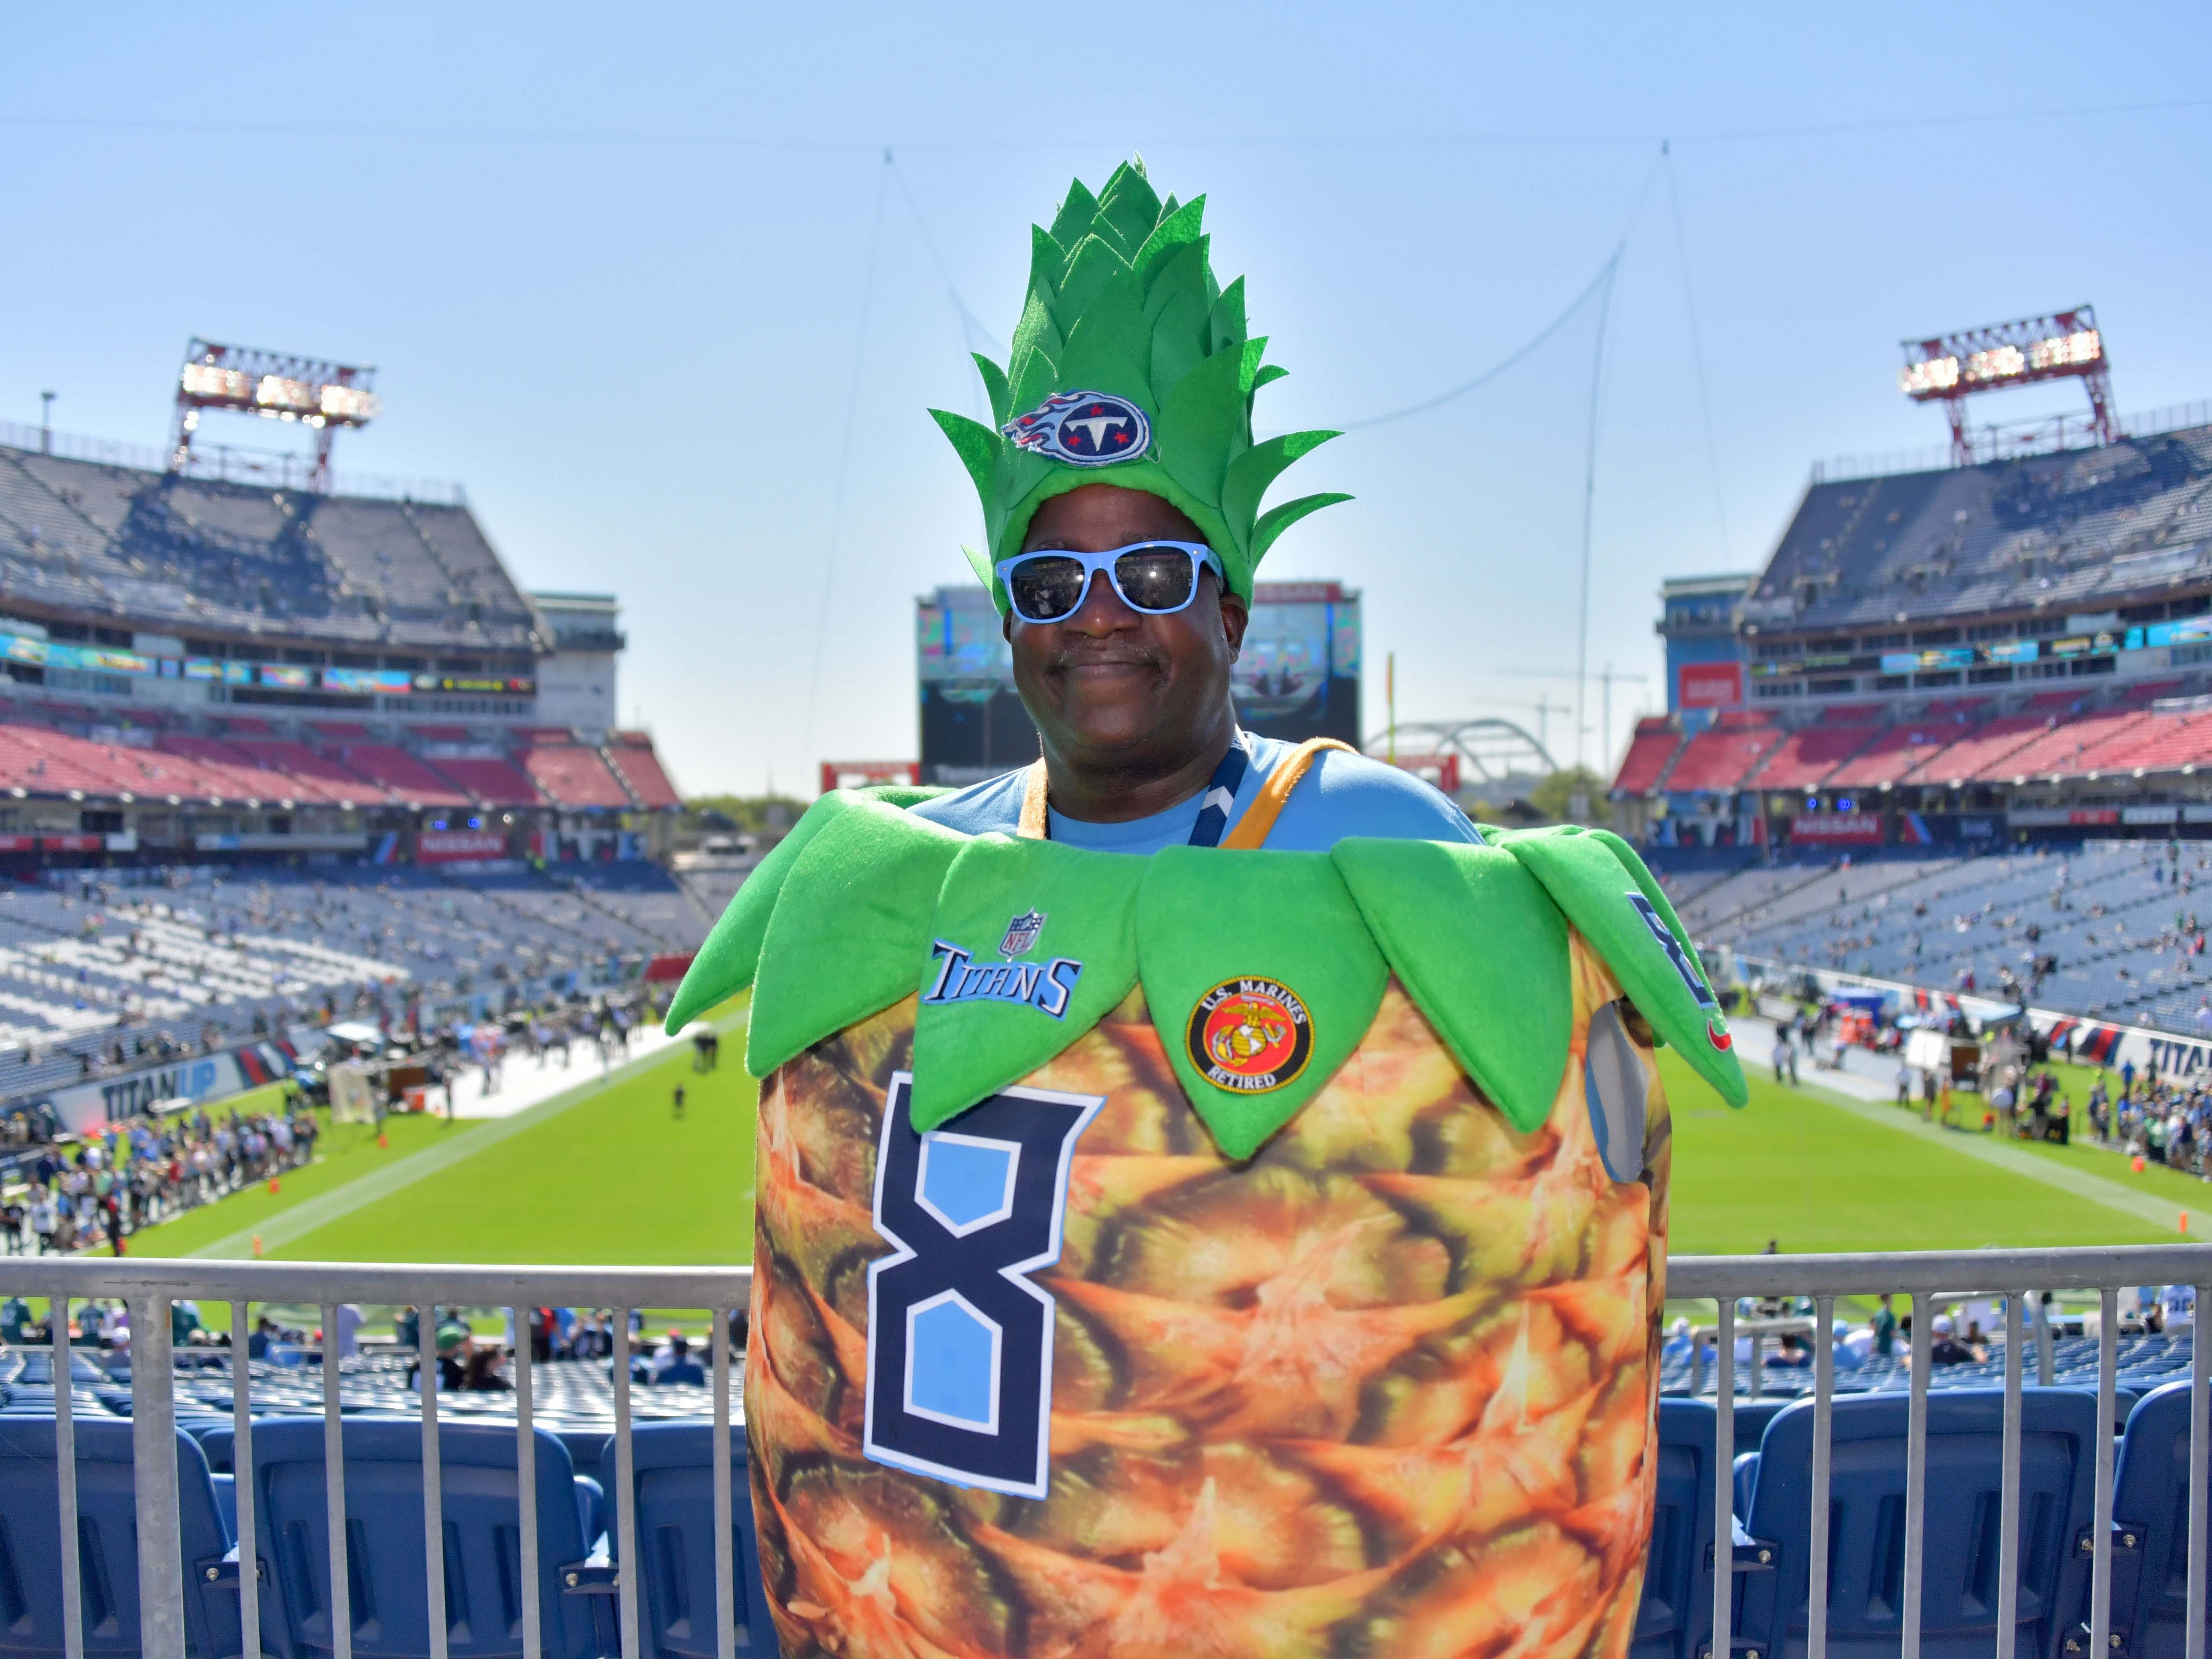 Tennessee Titans fan Ron Wray of Nashville shows his support prior to the game against the Philadelphia Eagles at Nissan Stadium.